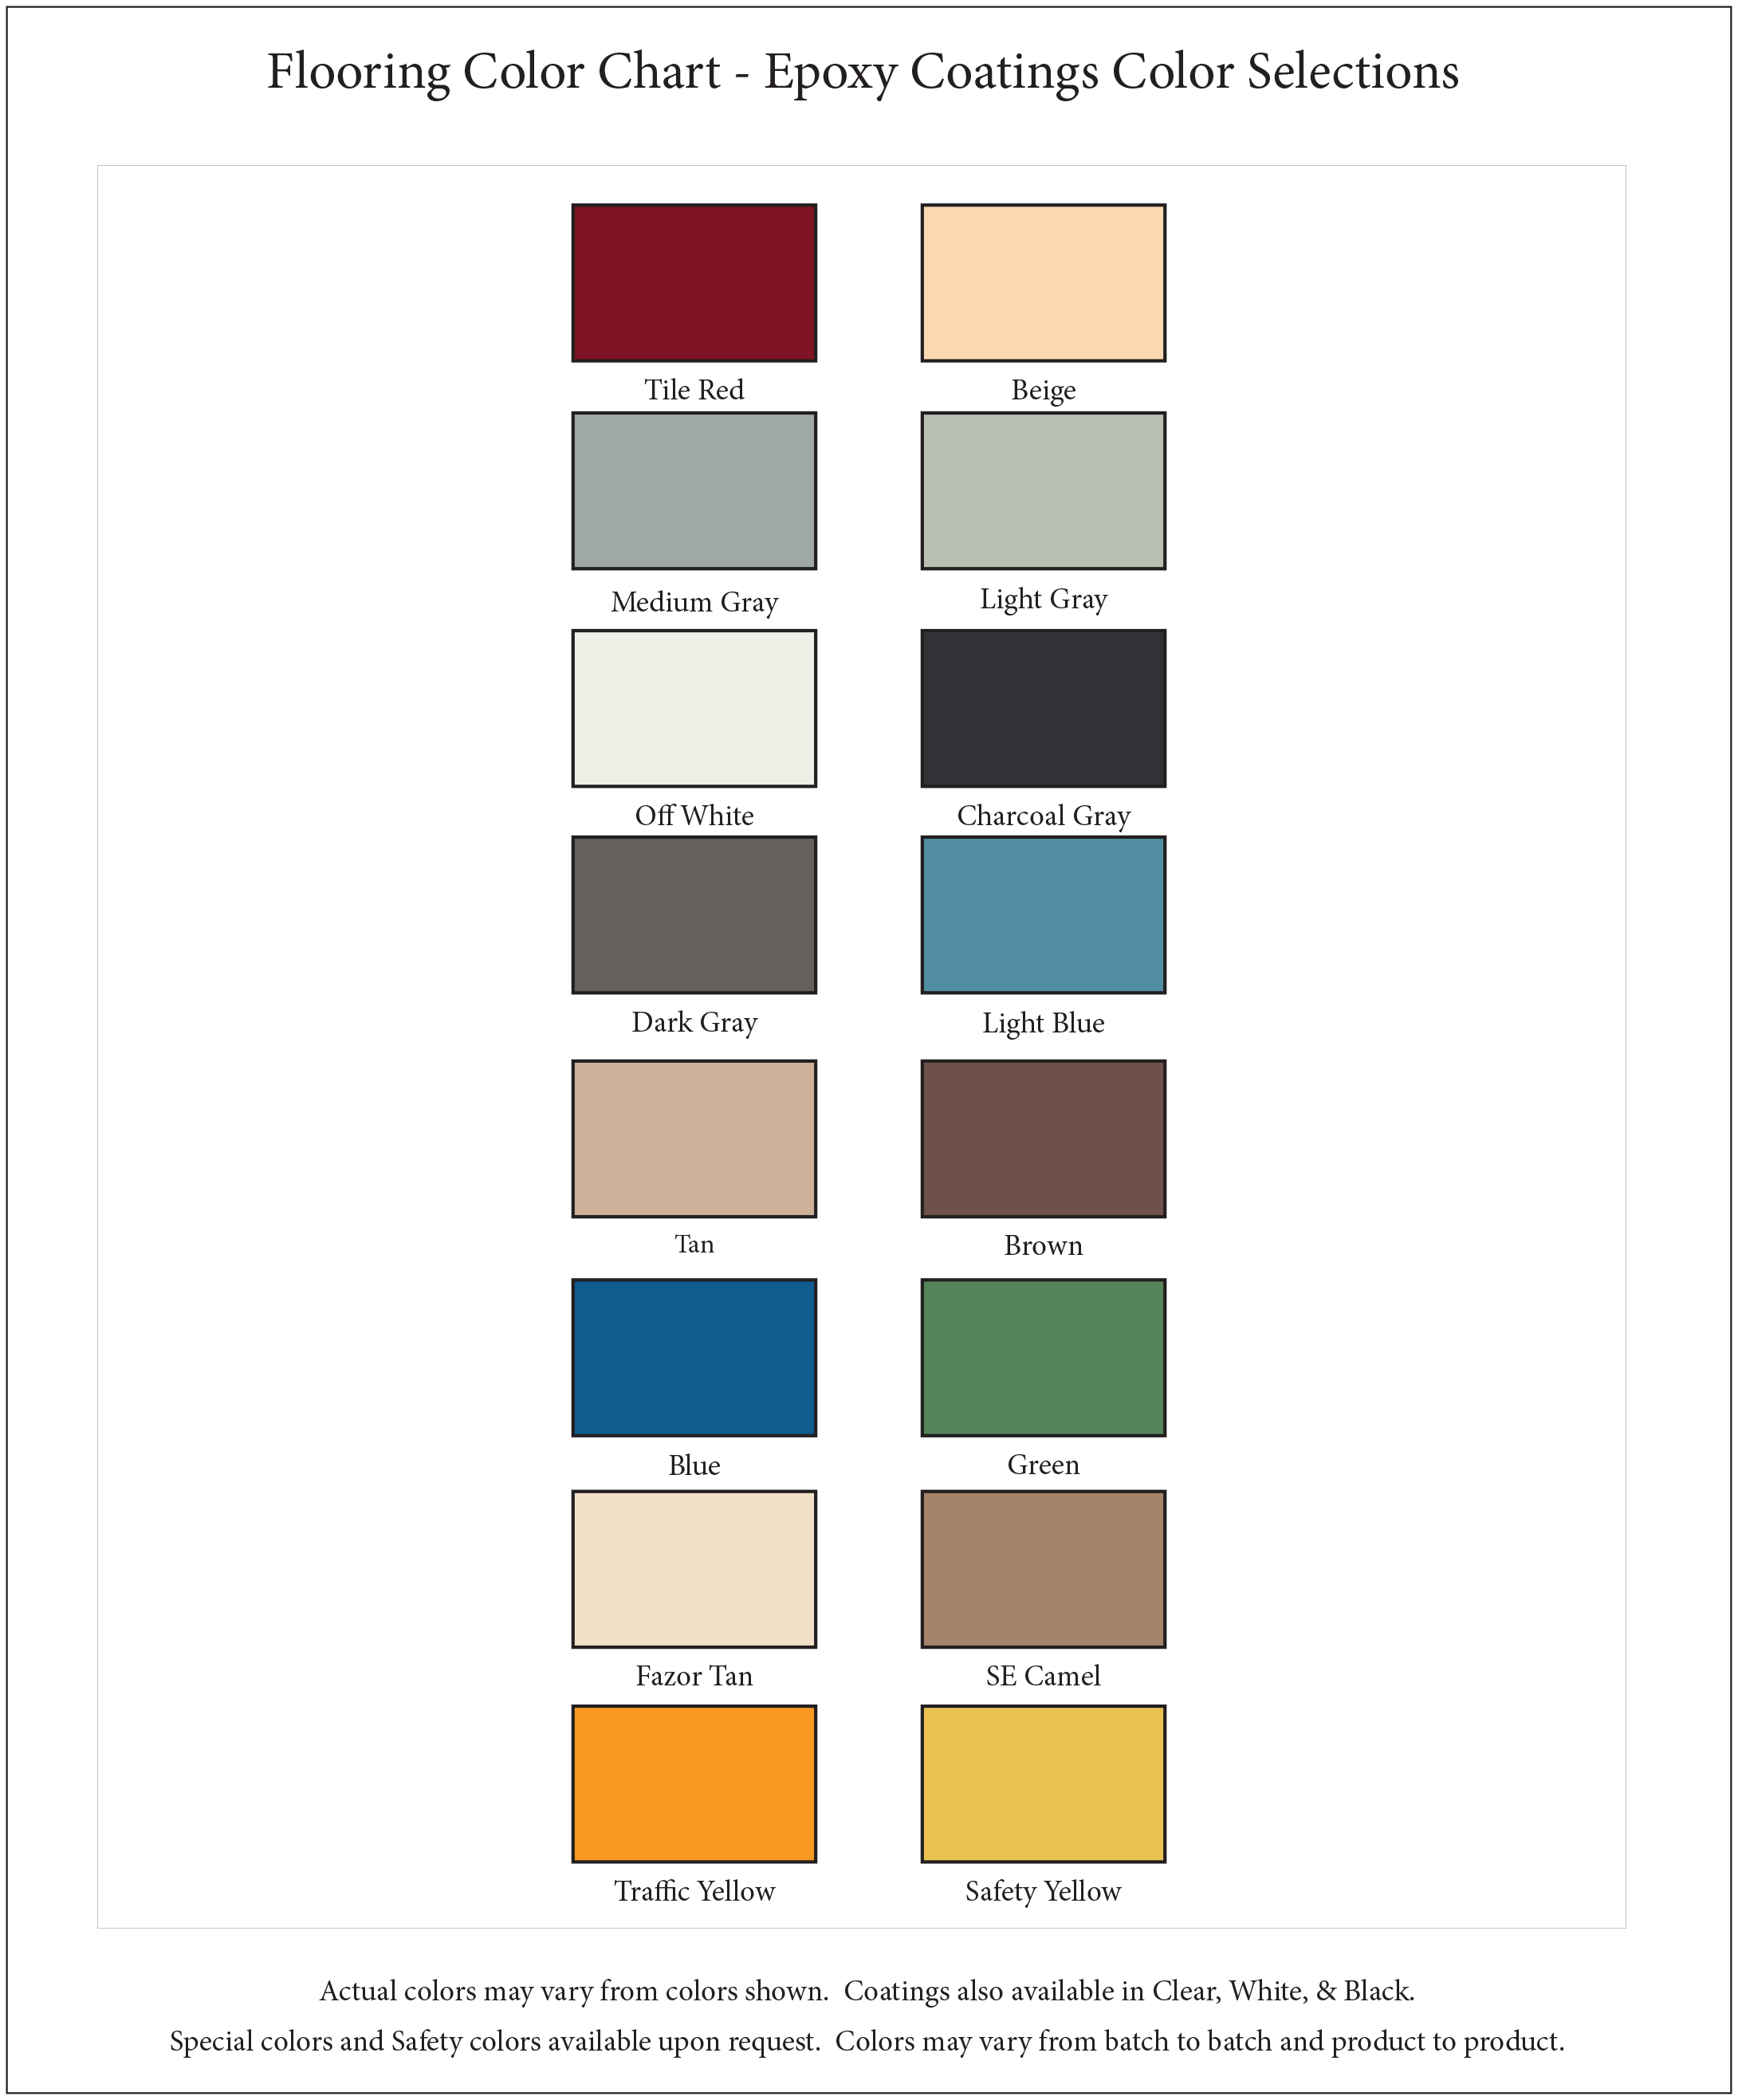 https://www.vseal.com/media/catalog/product/cache/1/image/9df78eab33525d08d6e5fb8d27136e95/i/n/industra-coat_color_chart_1.png